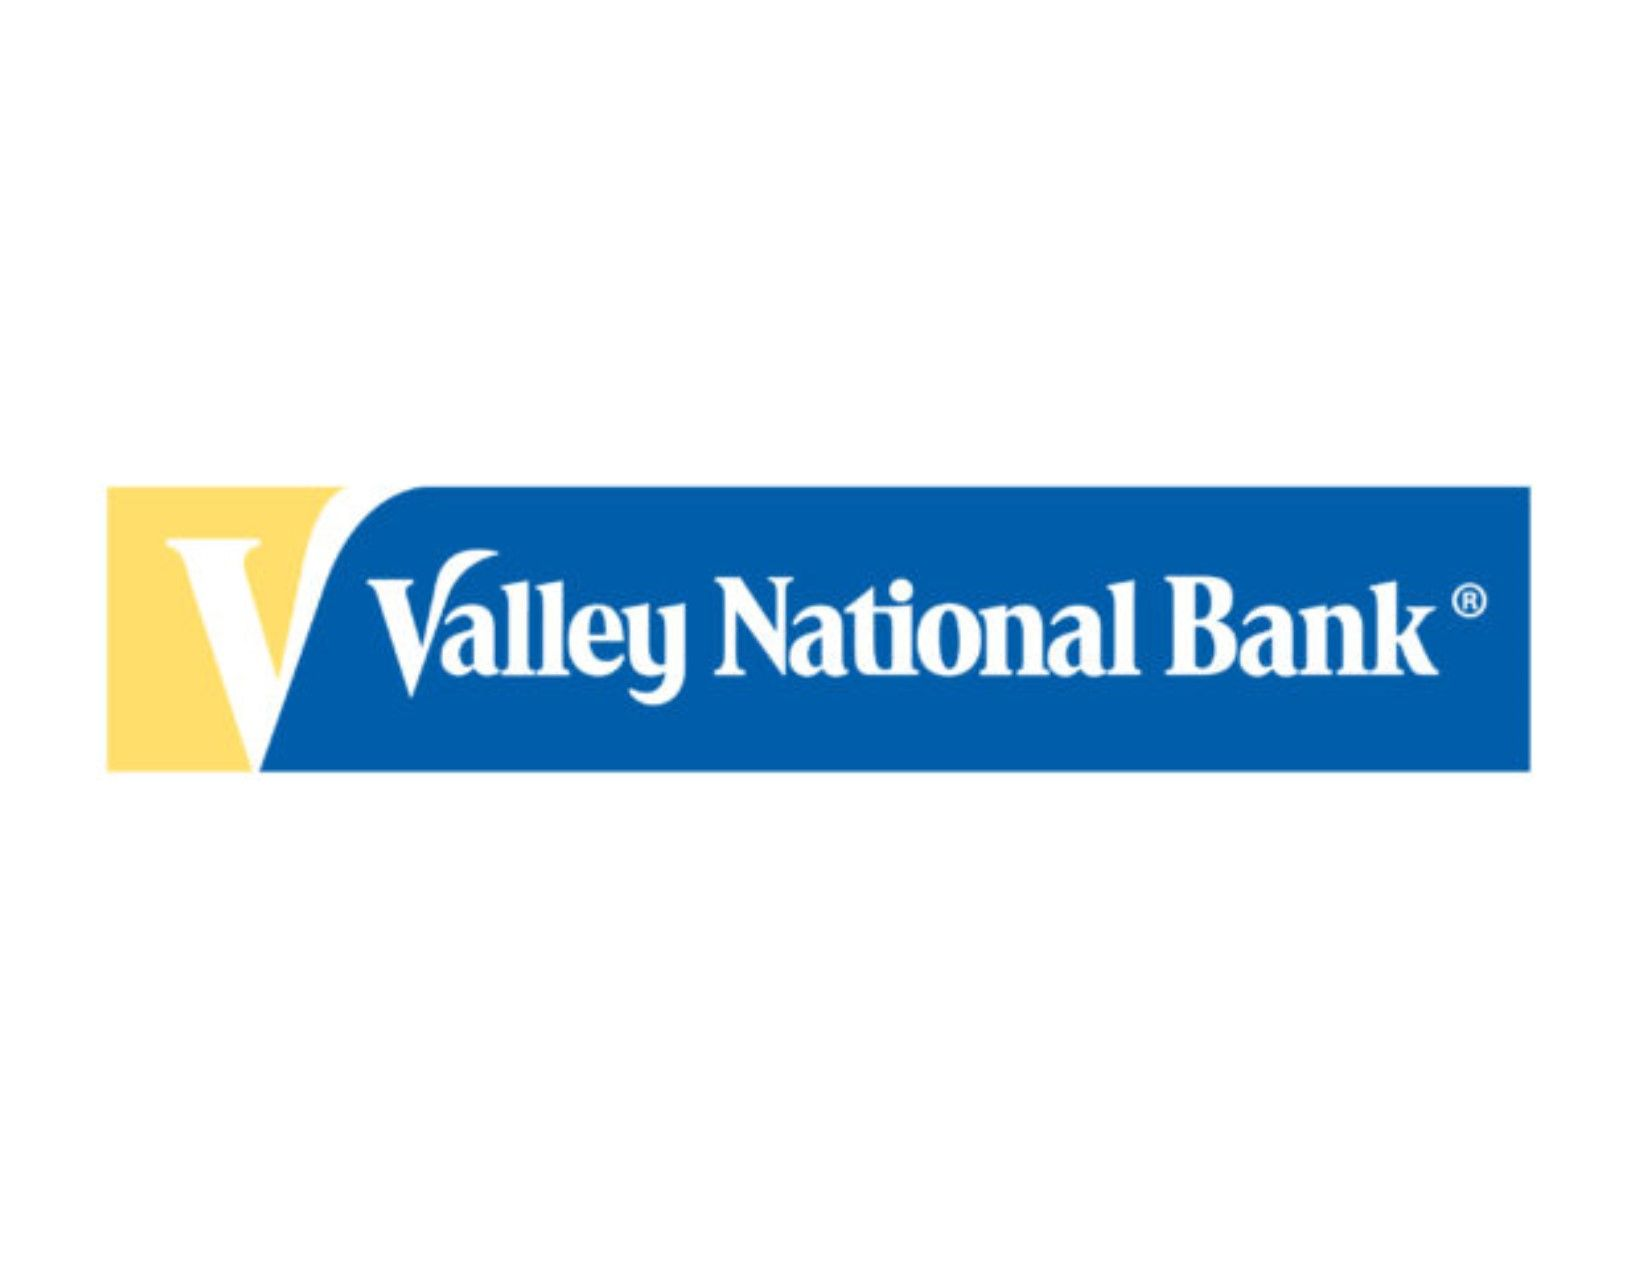 Valley National Bank